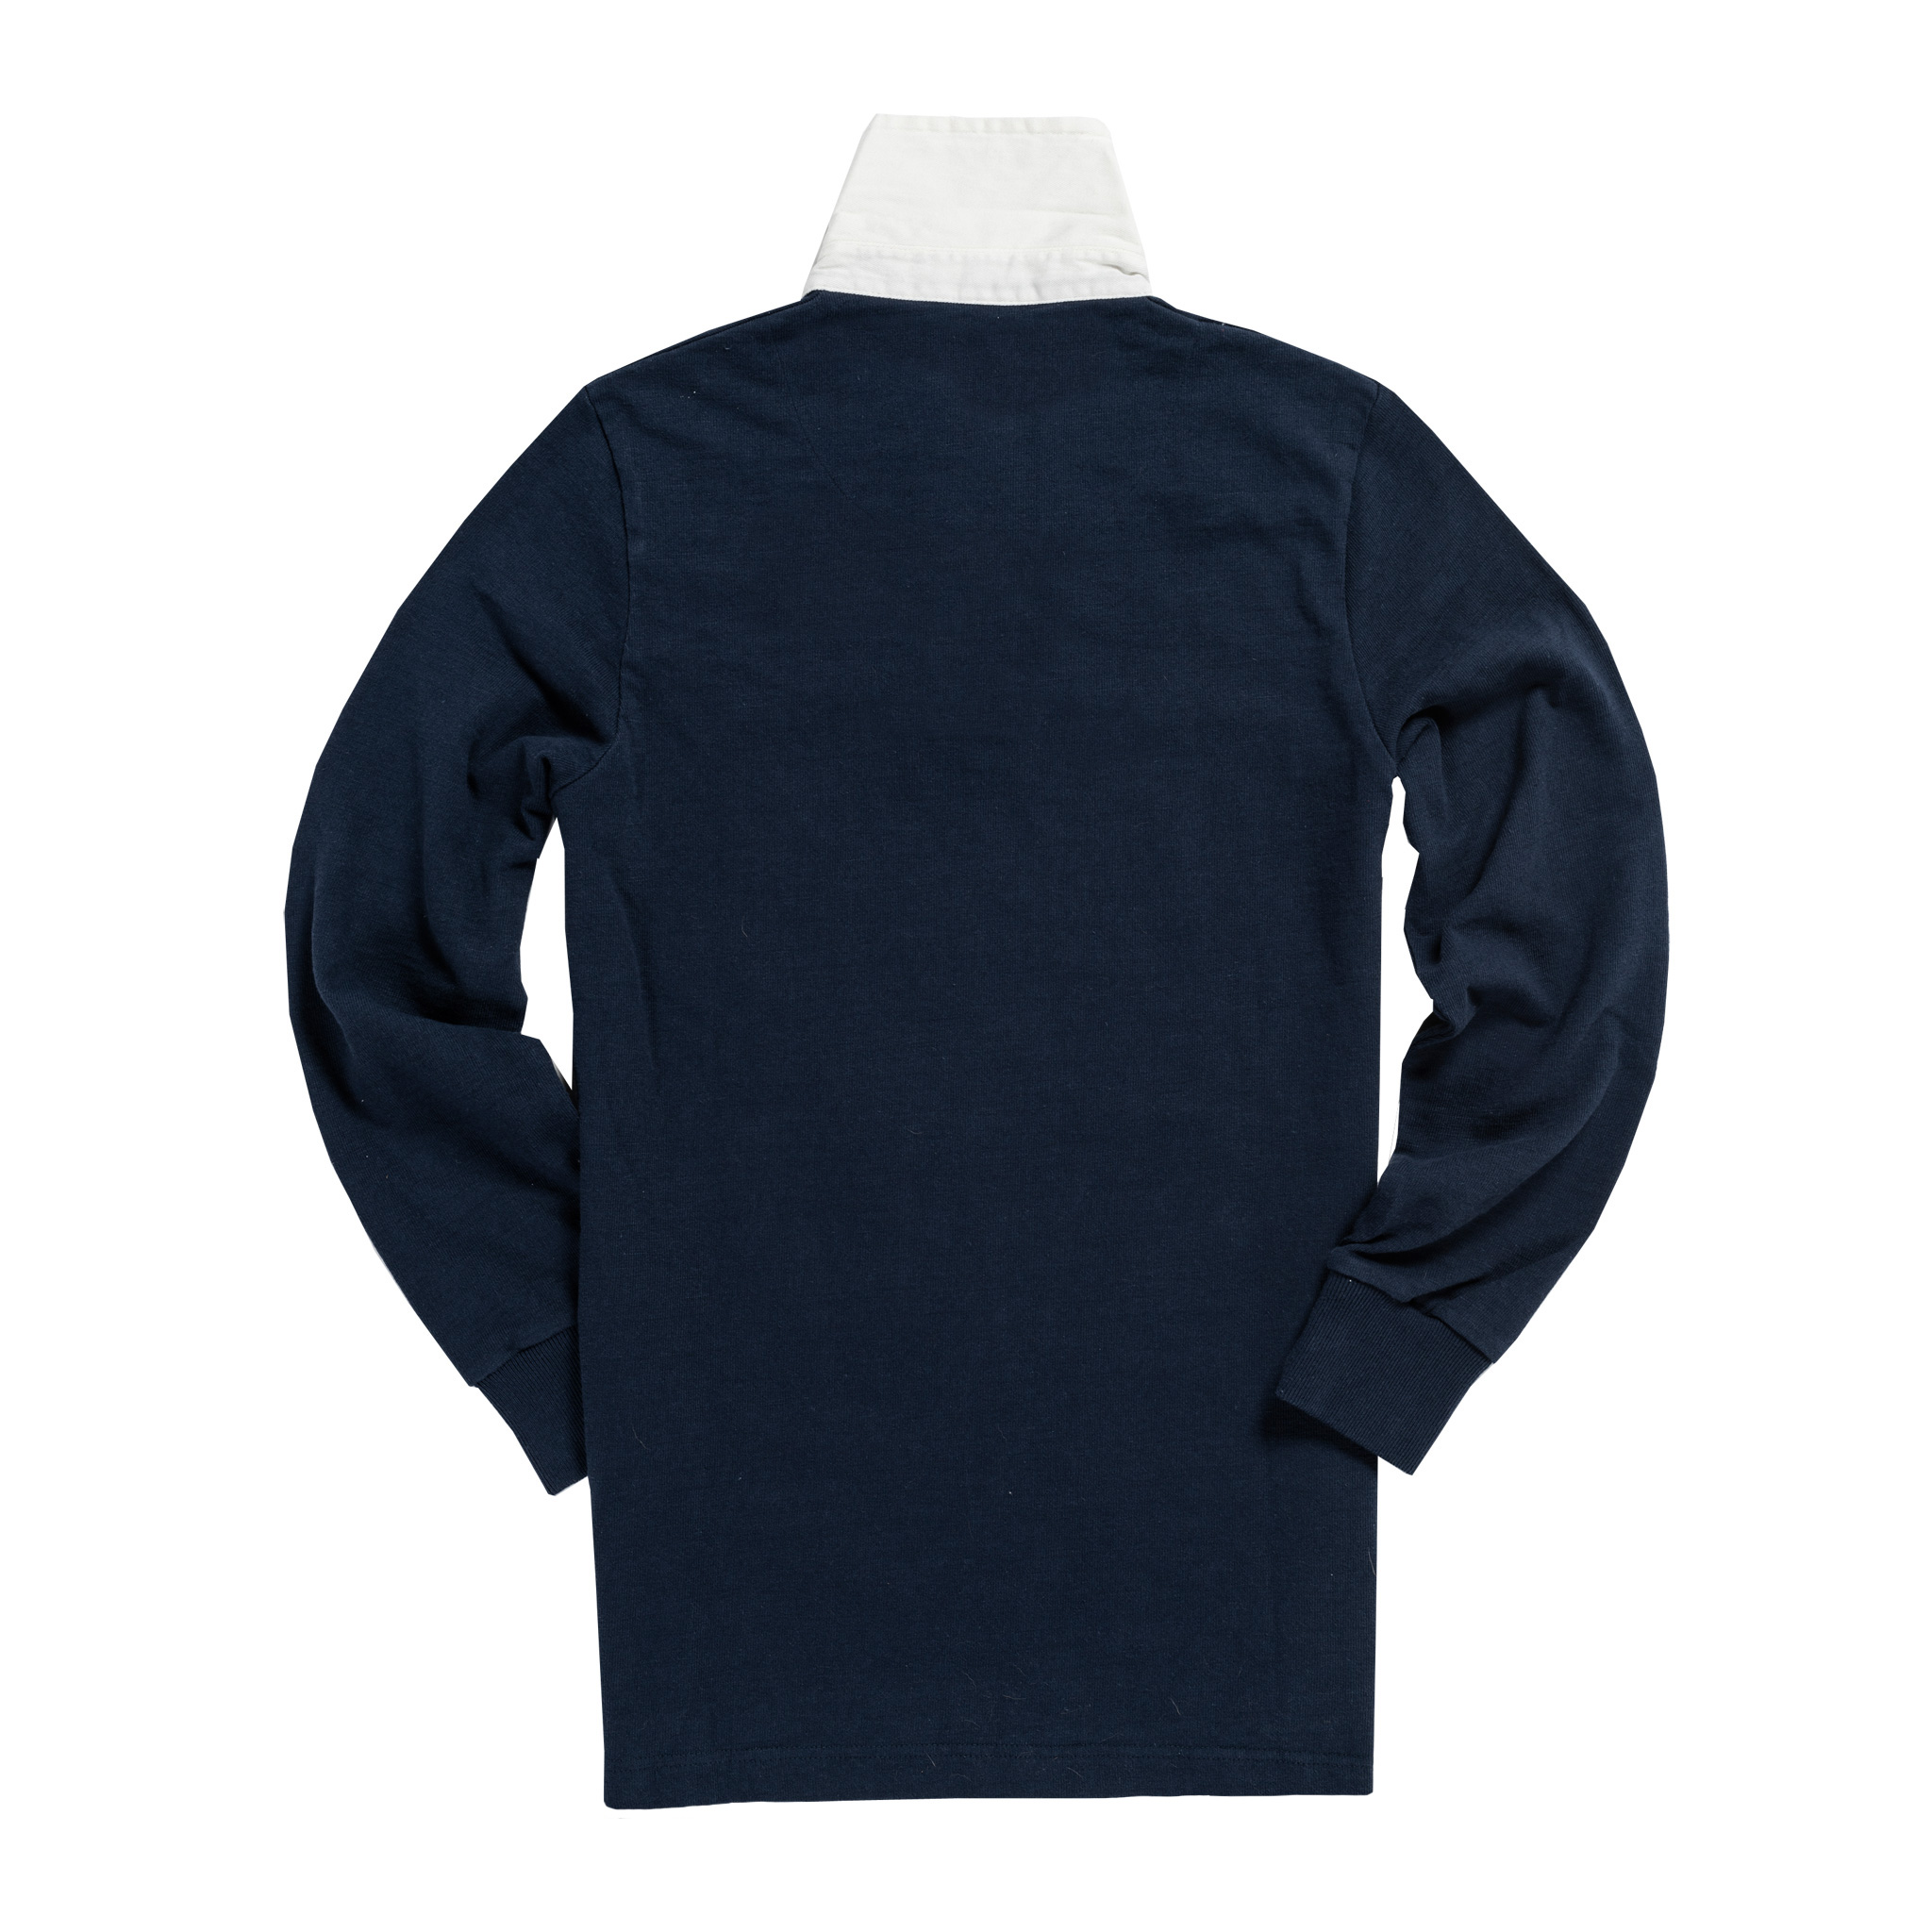 Women's Oxford 1872 Vintage Rugby Shirt